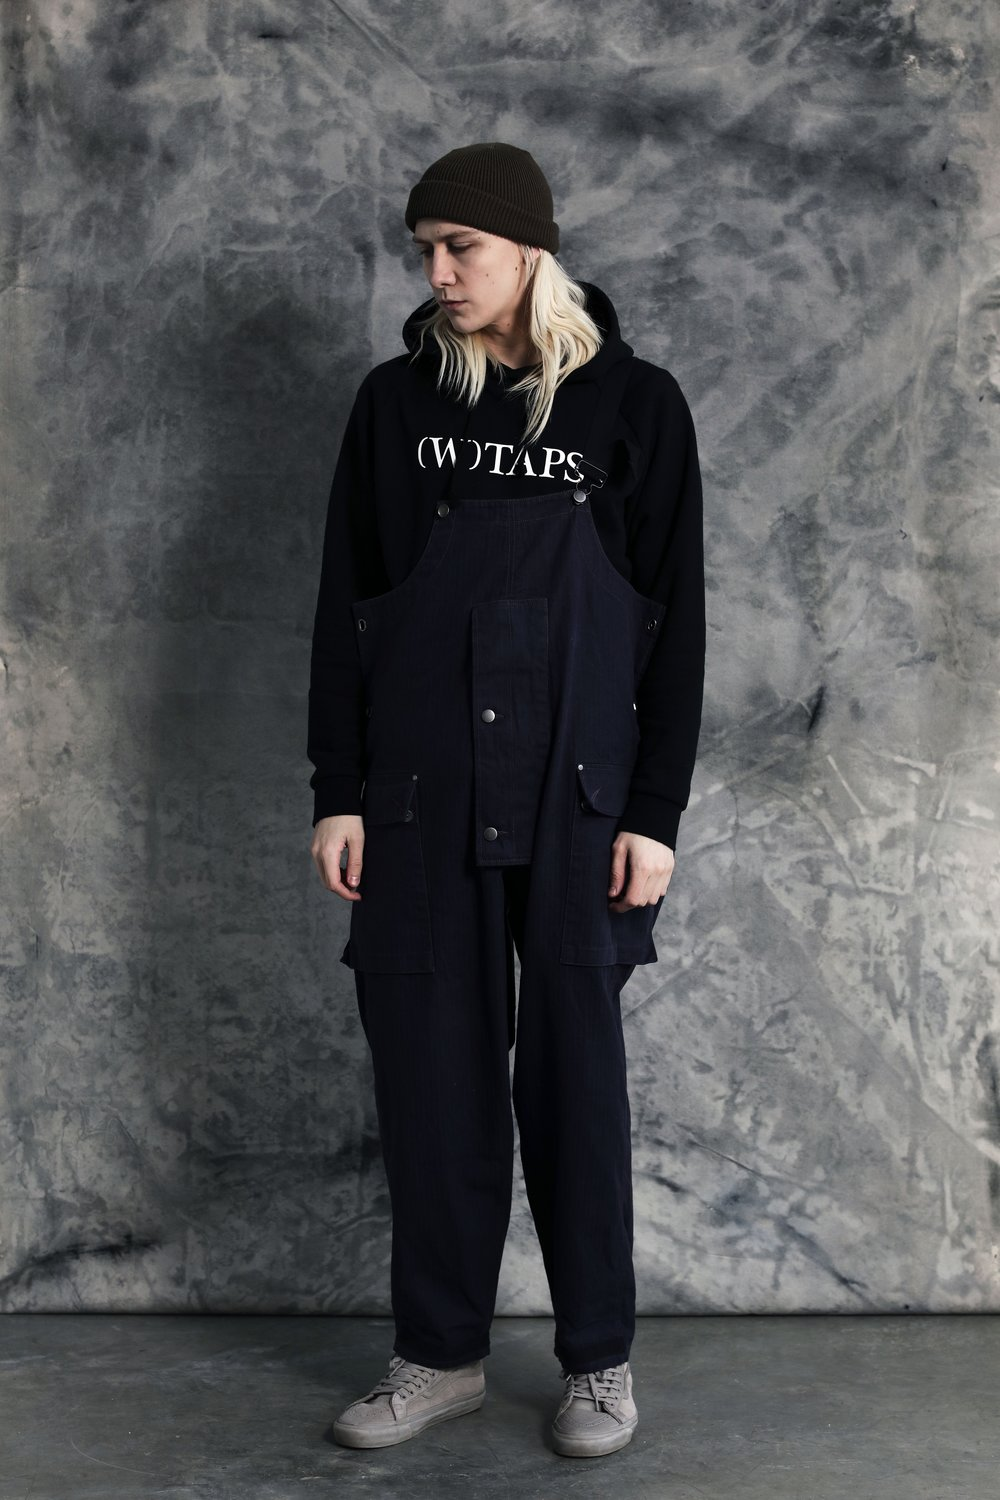 - Wtaps   Our Legacy   Vans x Engineered Garments